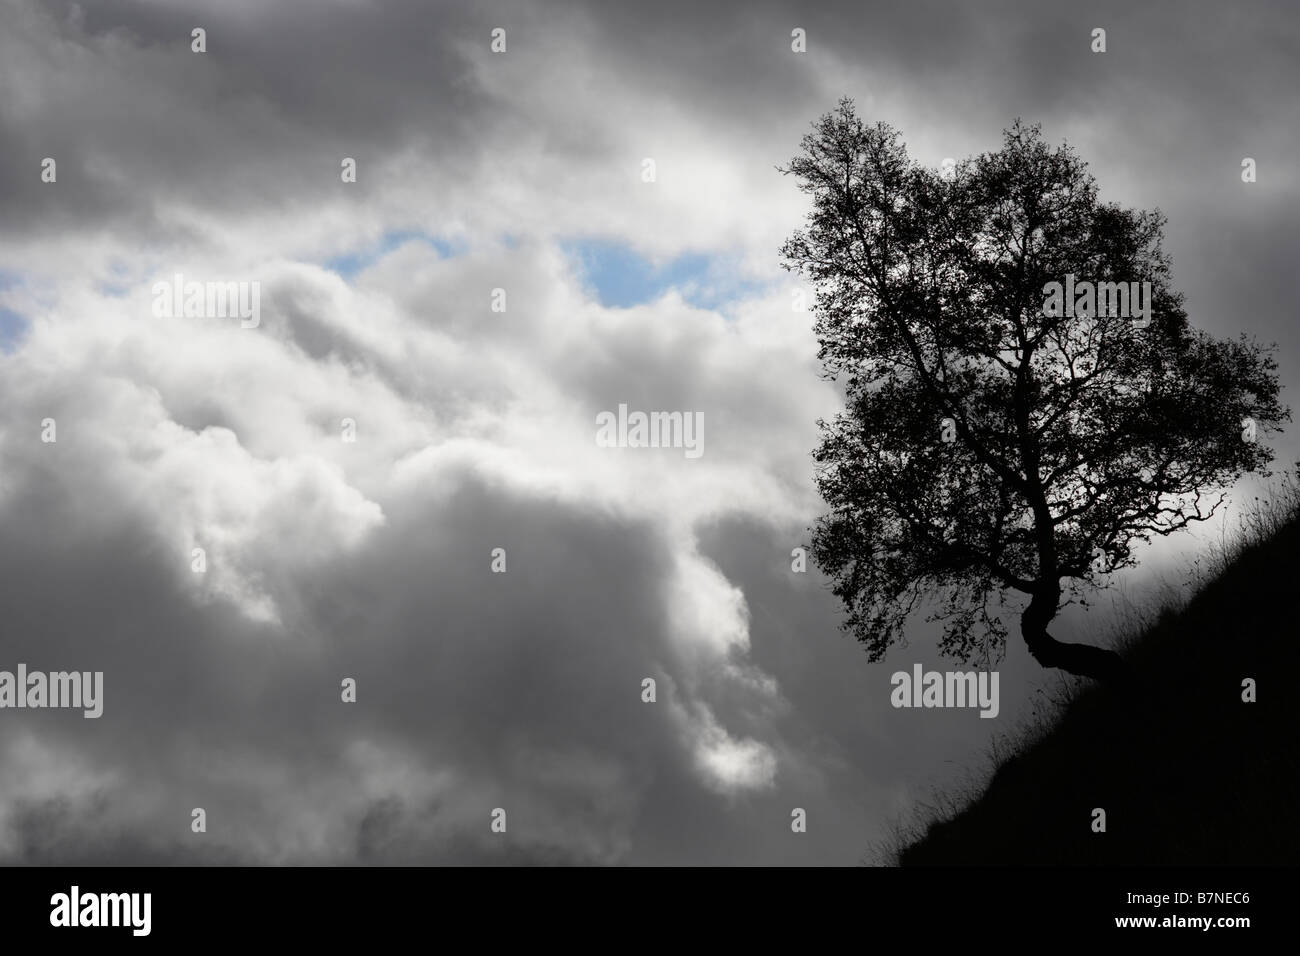 Silhouette of small tree on steep slope against dark grey clouds in Perthshire Scotland - Stock Image